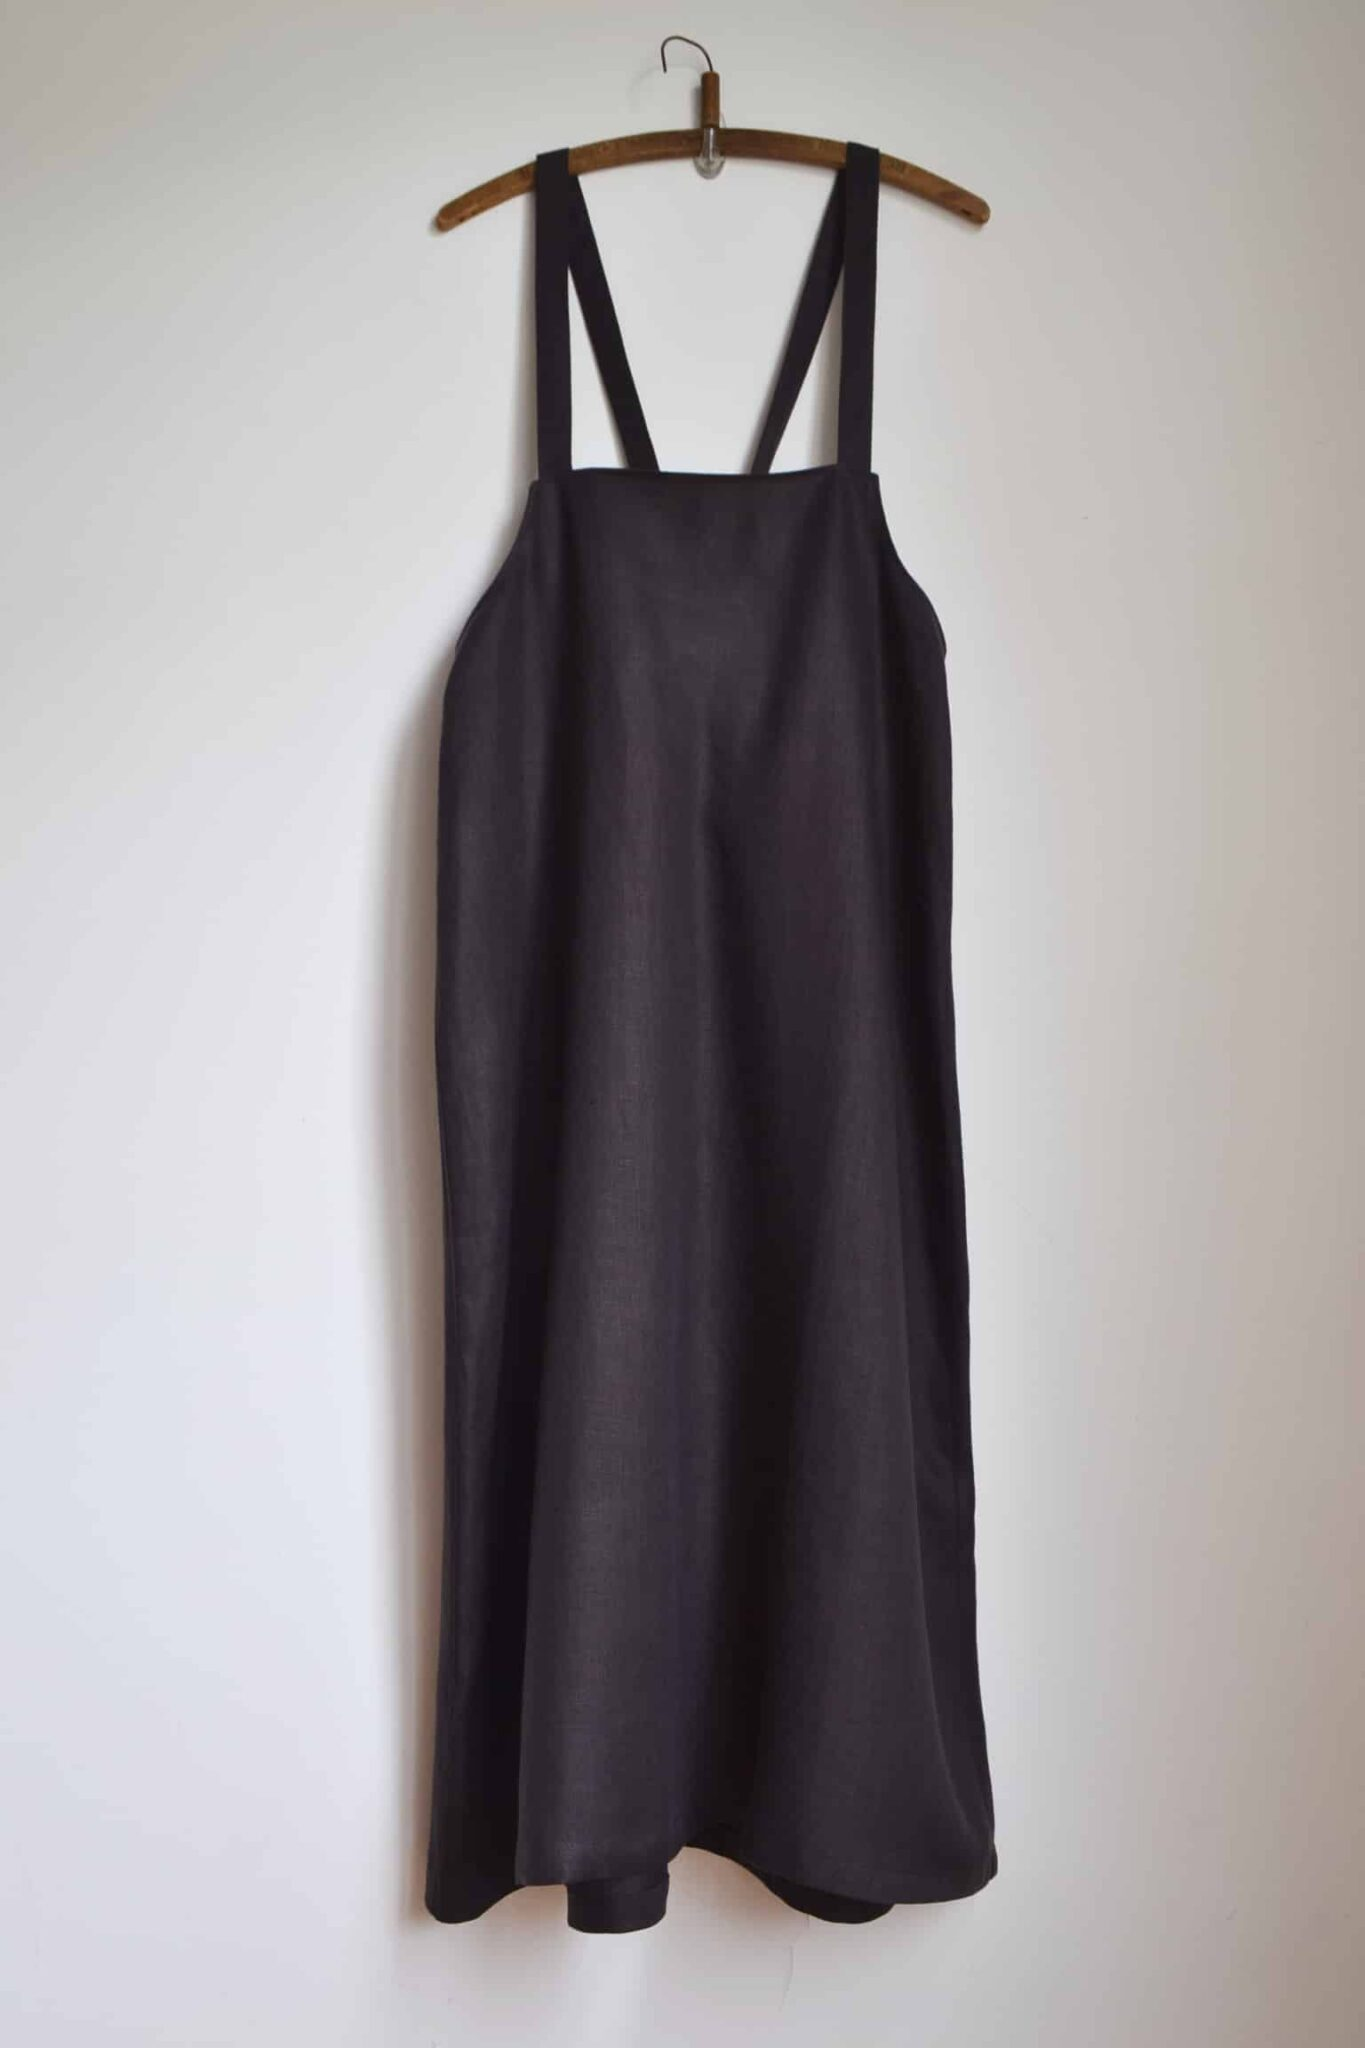 Maxi Salopette Skirt (Chocolate), M Size, In Pure Linen Twill By à Pois